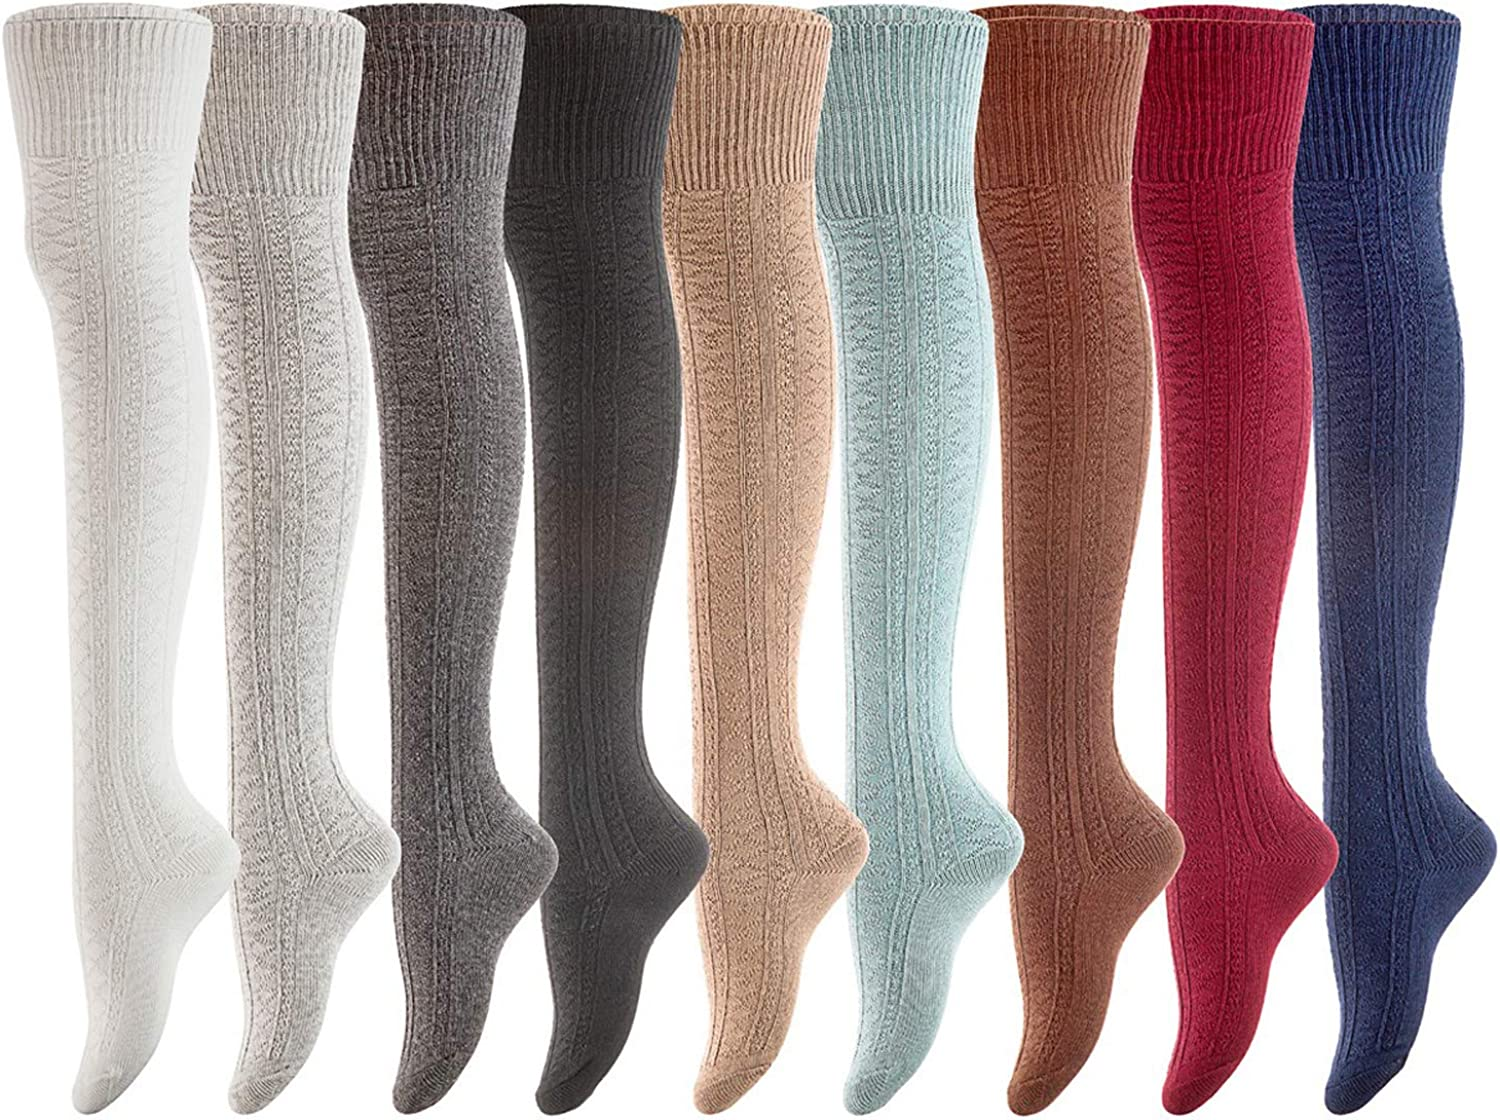 Remarkable Big Girls Womens 3 Pairs Thigh High Cotton Socks LABG1025 One Size